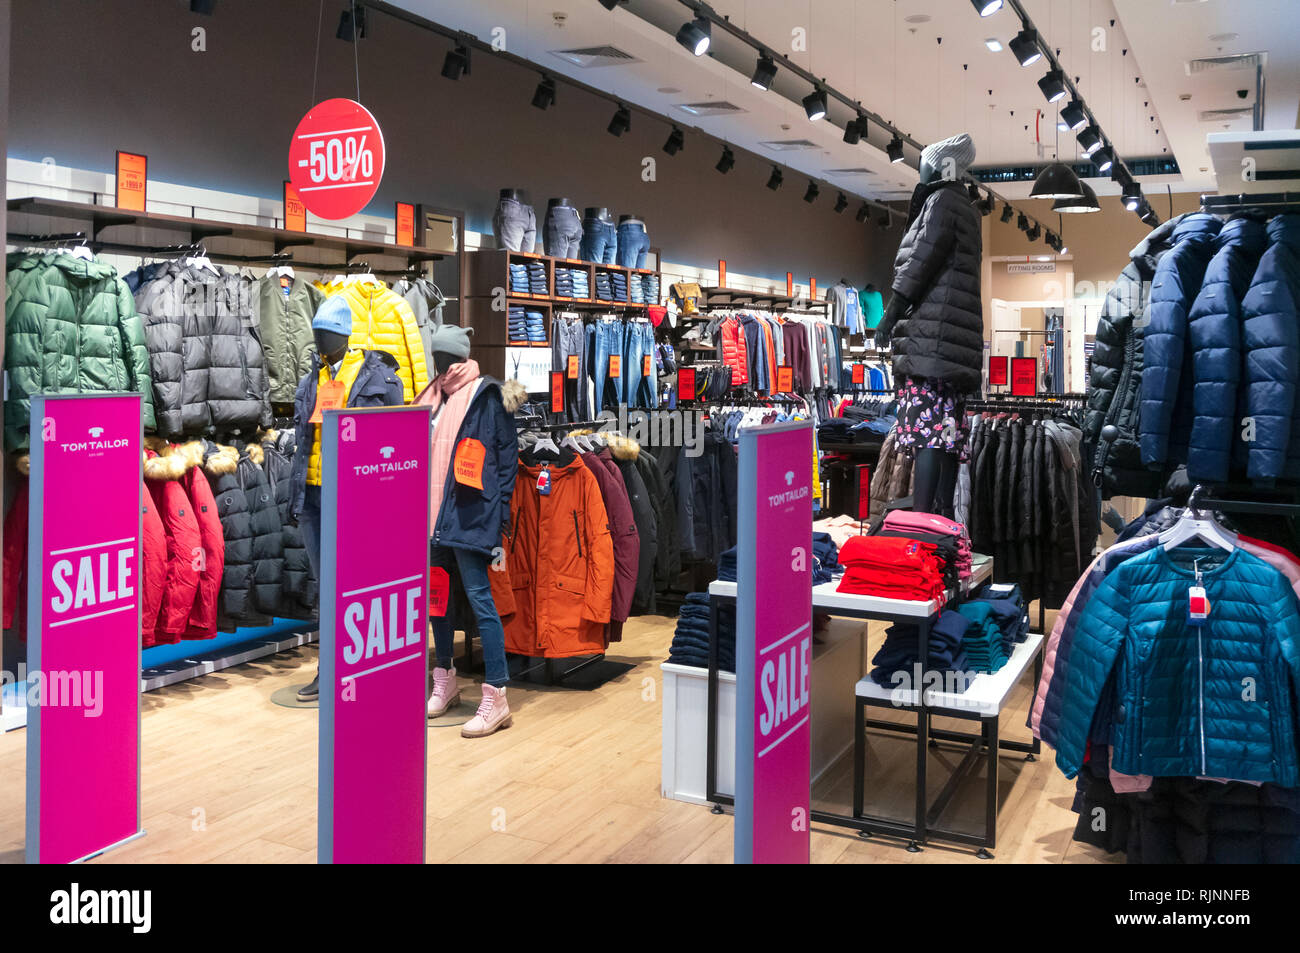 Clothing Store Interior Design Stock Photos & Clothing Store ...